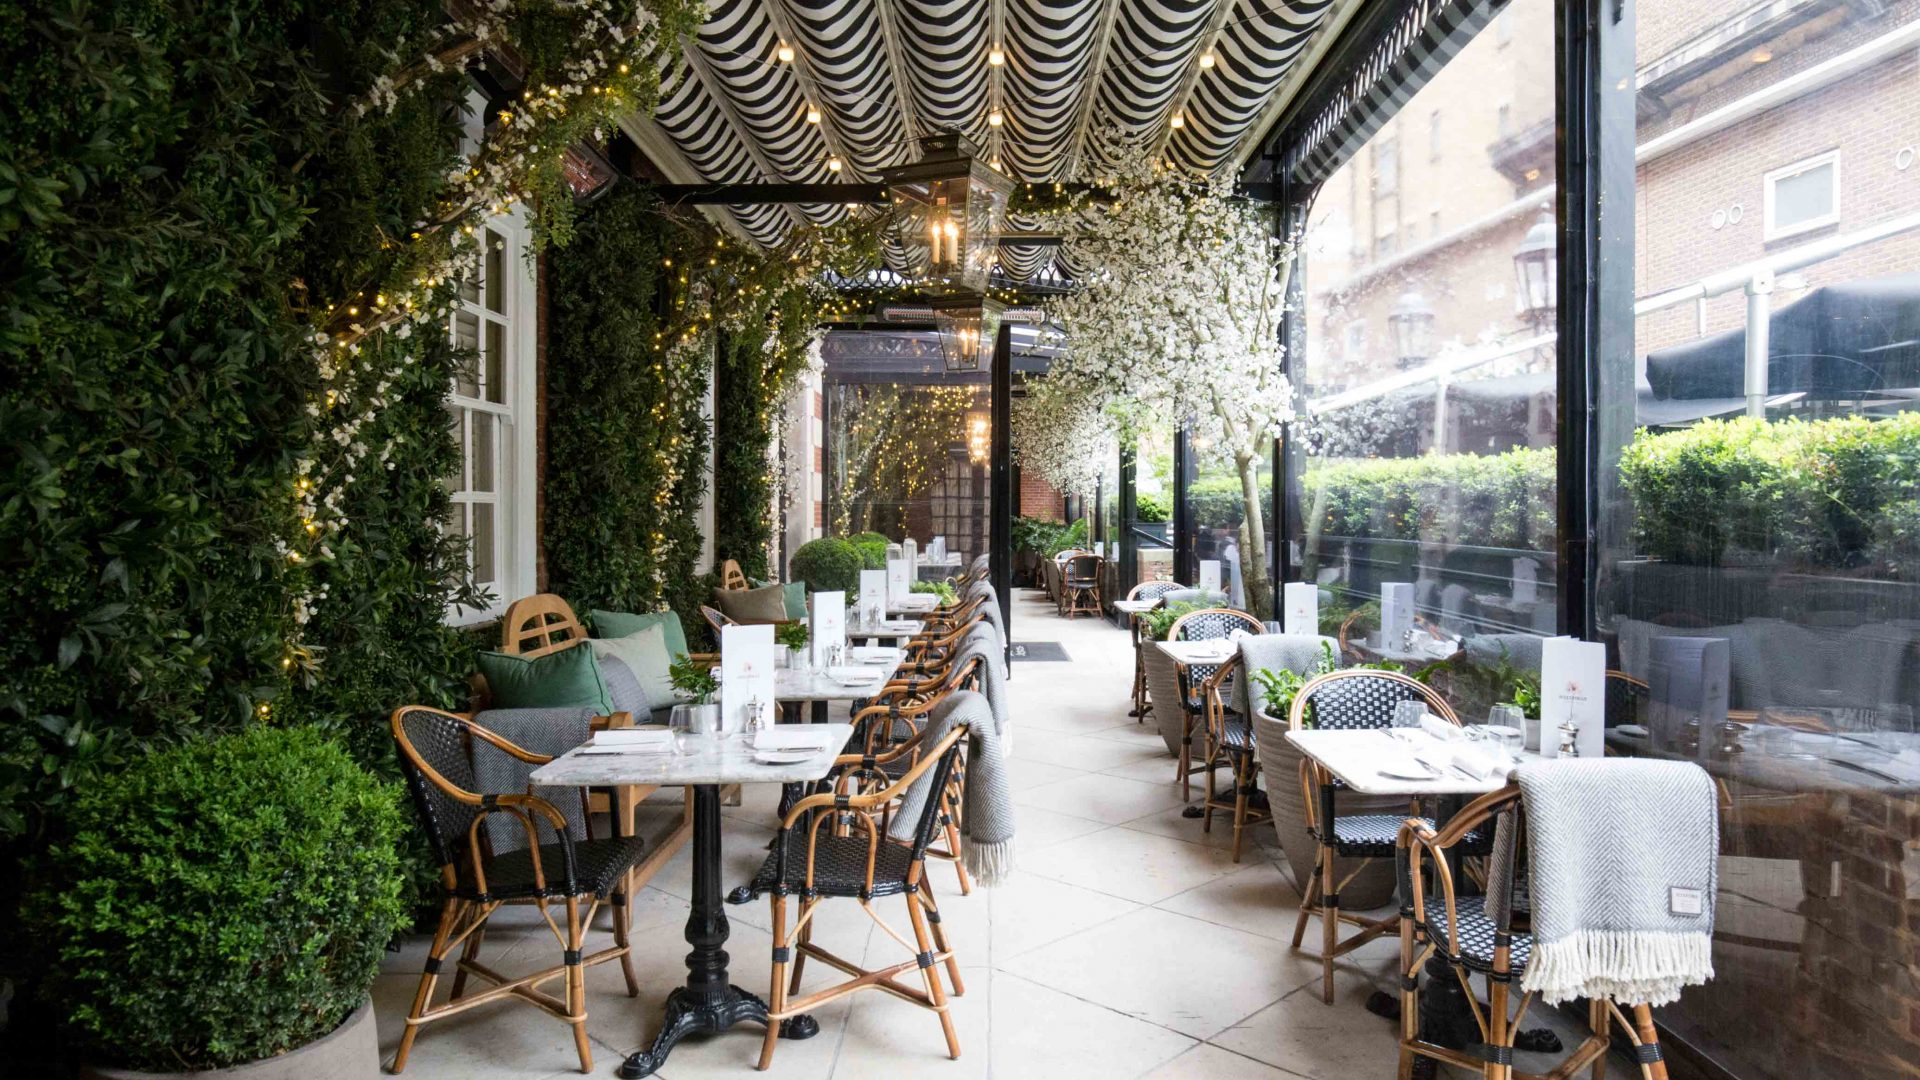 Dalloway terrace bar is an elegant poetic and for The terrace bar